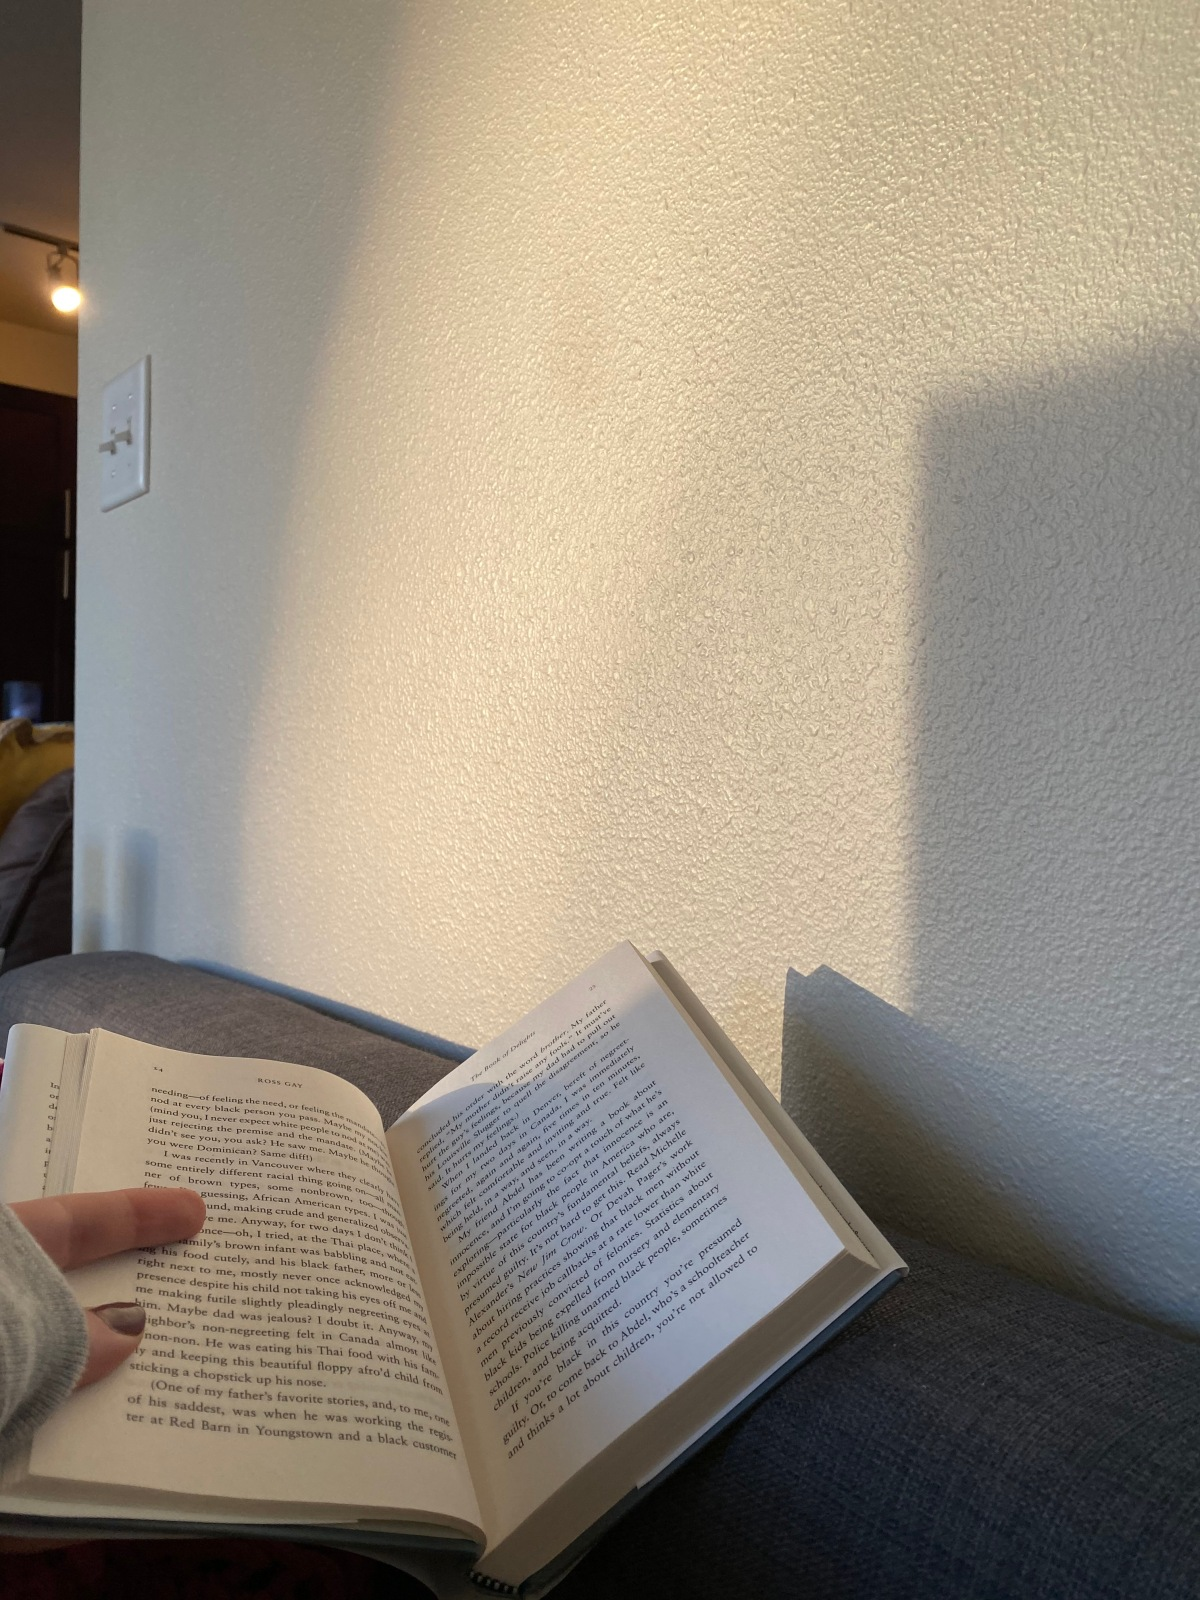 reading a book in sunset